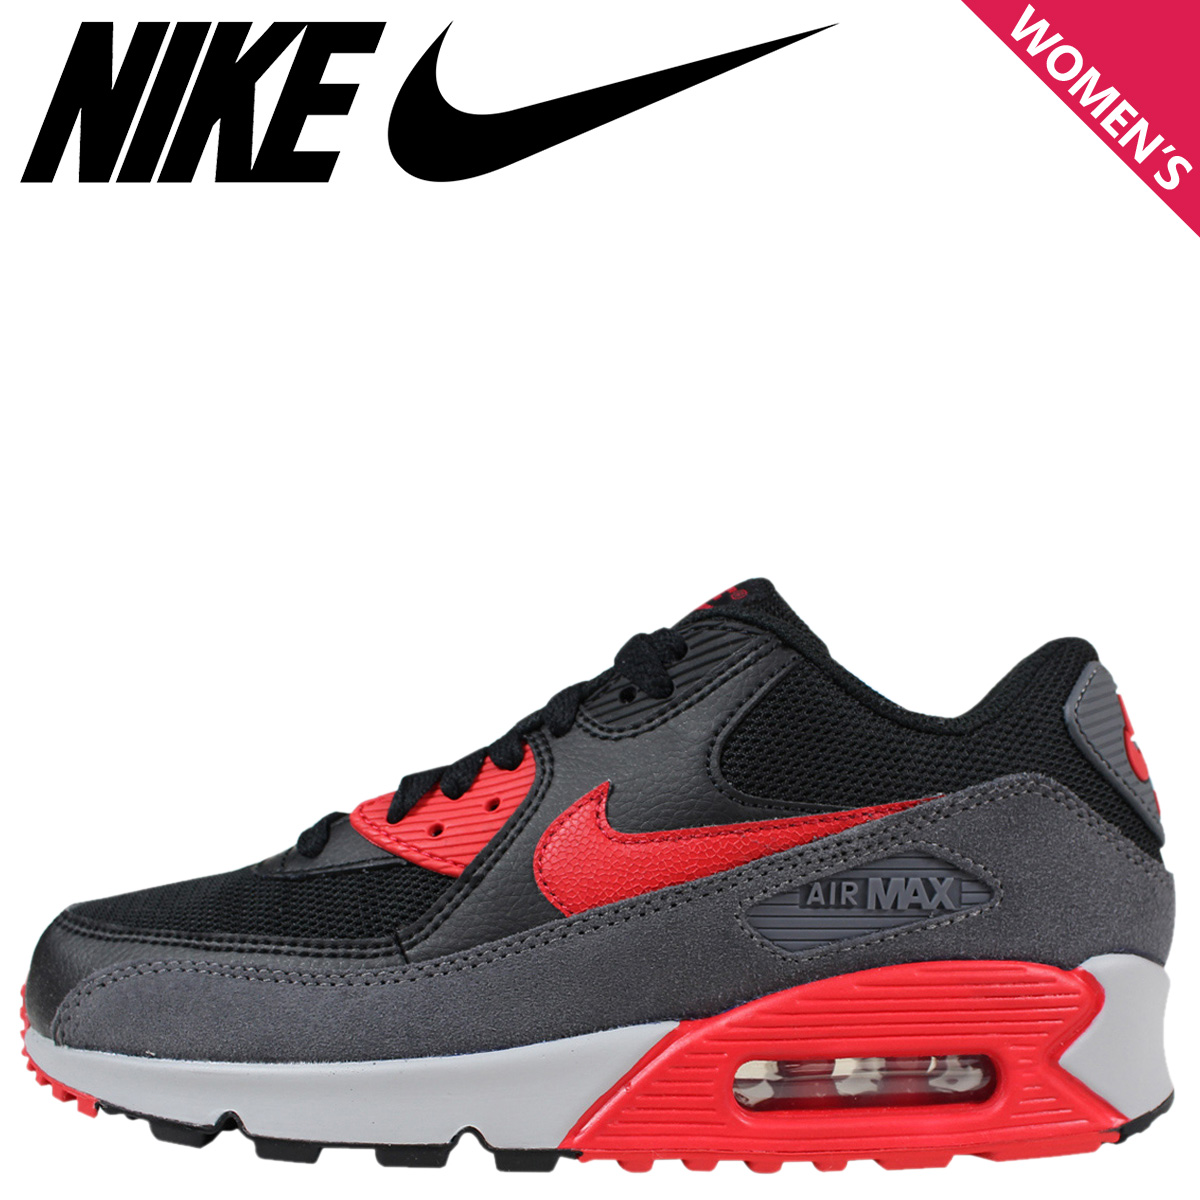 108590cb13 The origin of the name comes from the Greece myths of one Jeff Johnson saw  in the dream, victory goddess Nike (Nike).